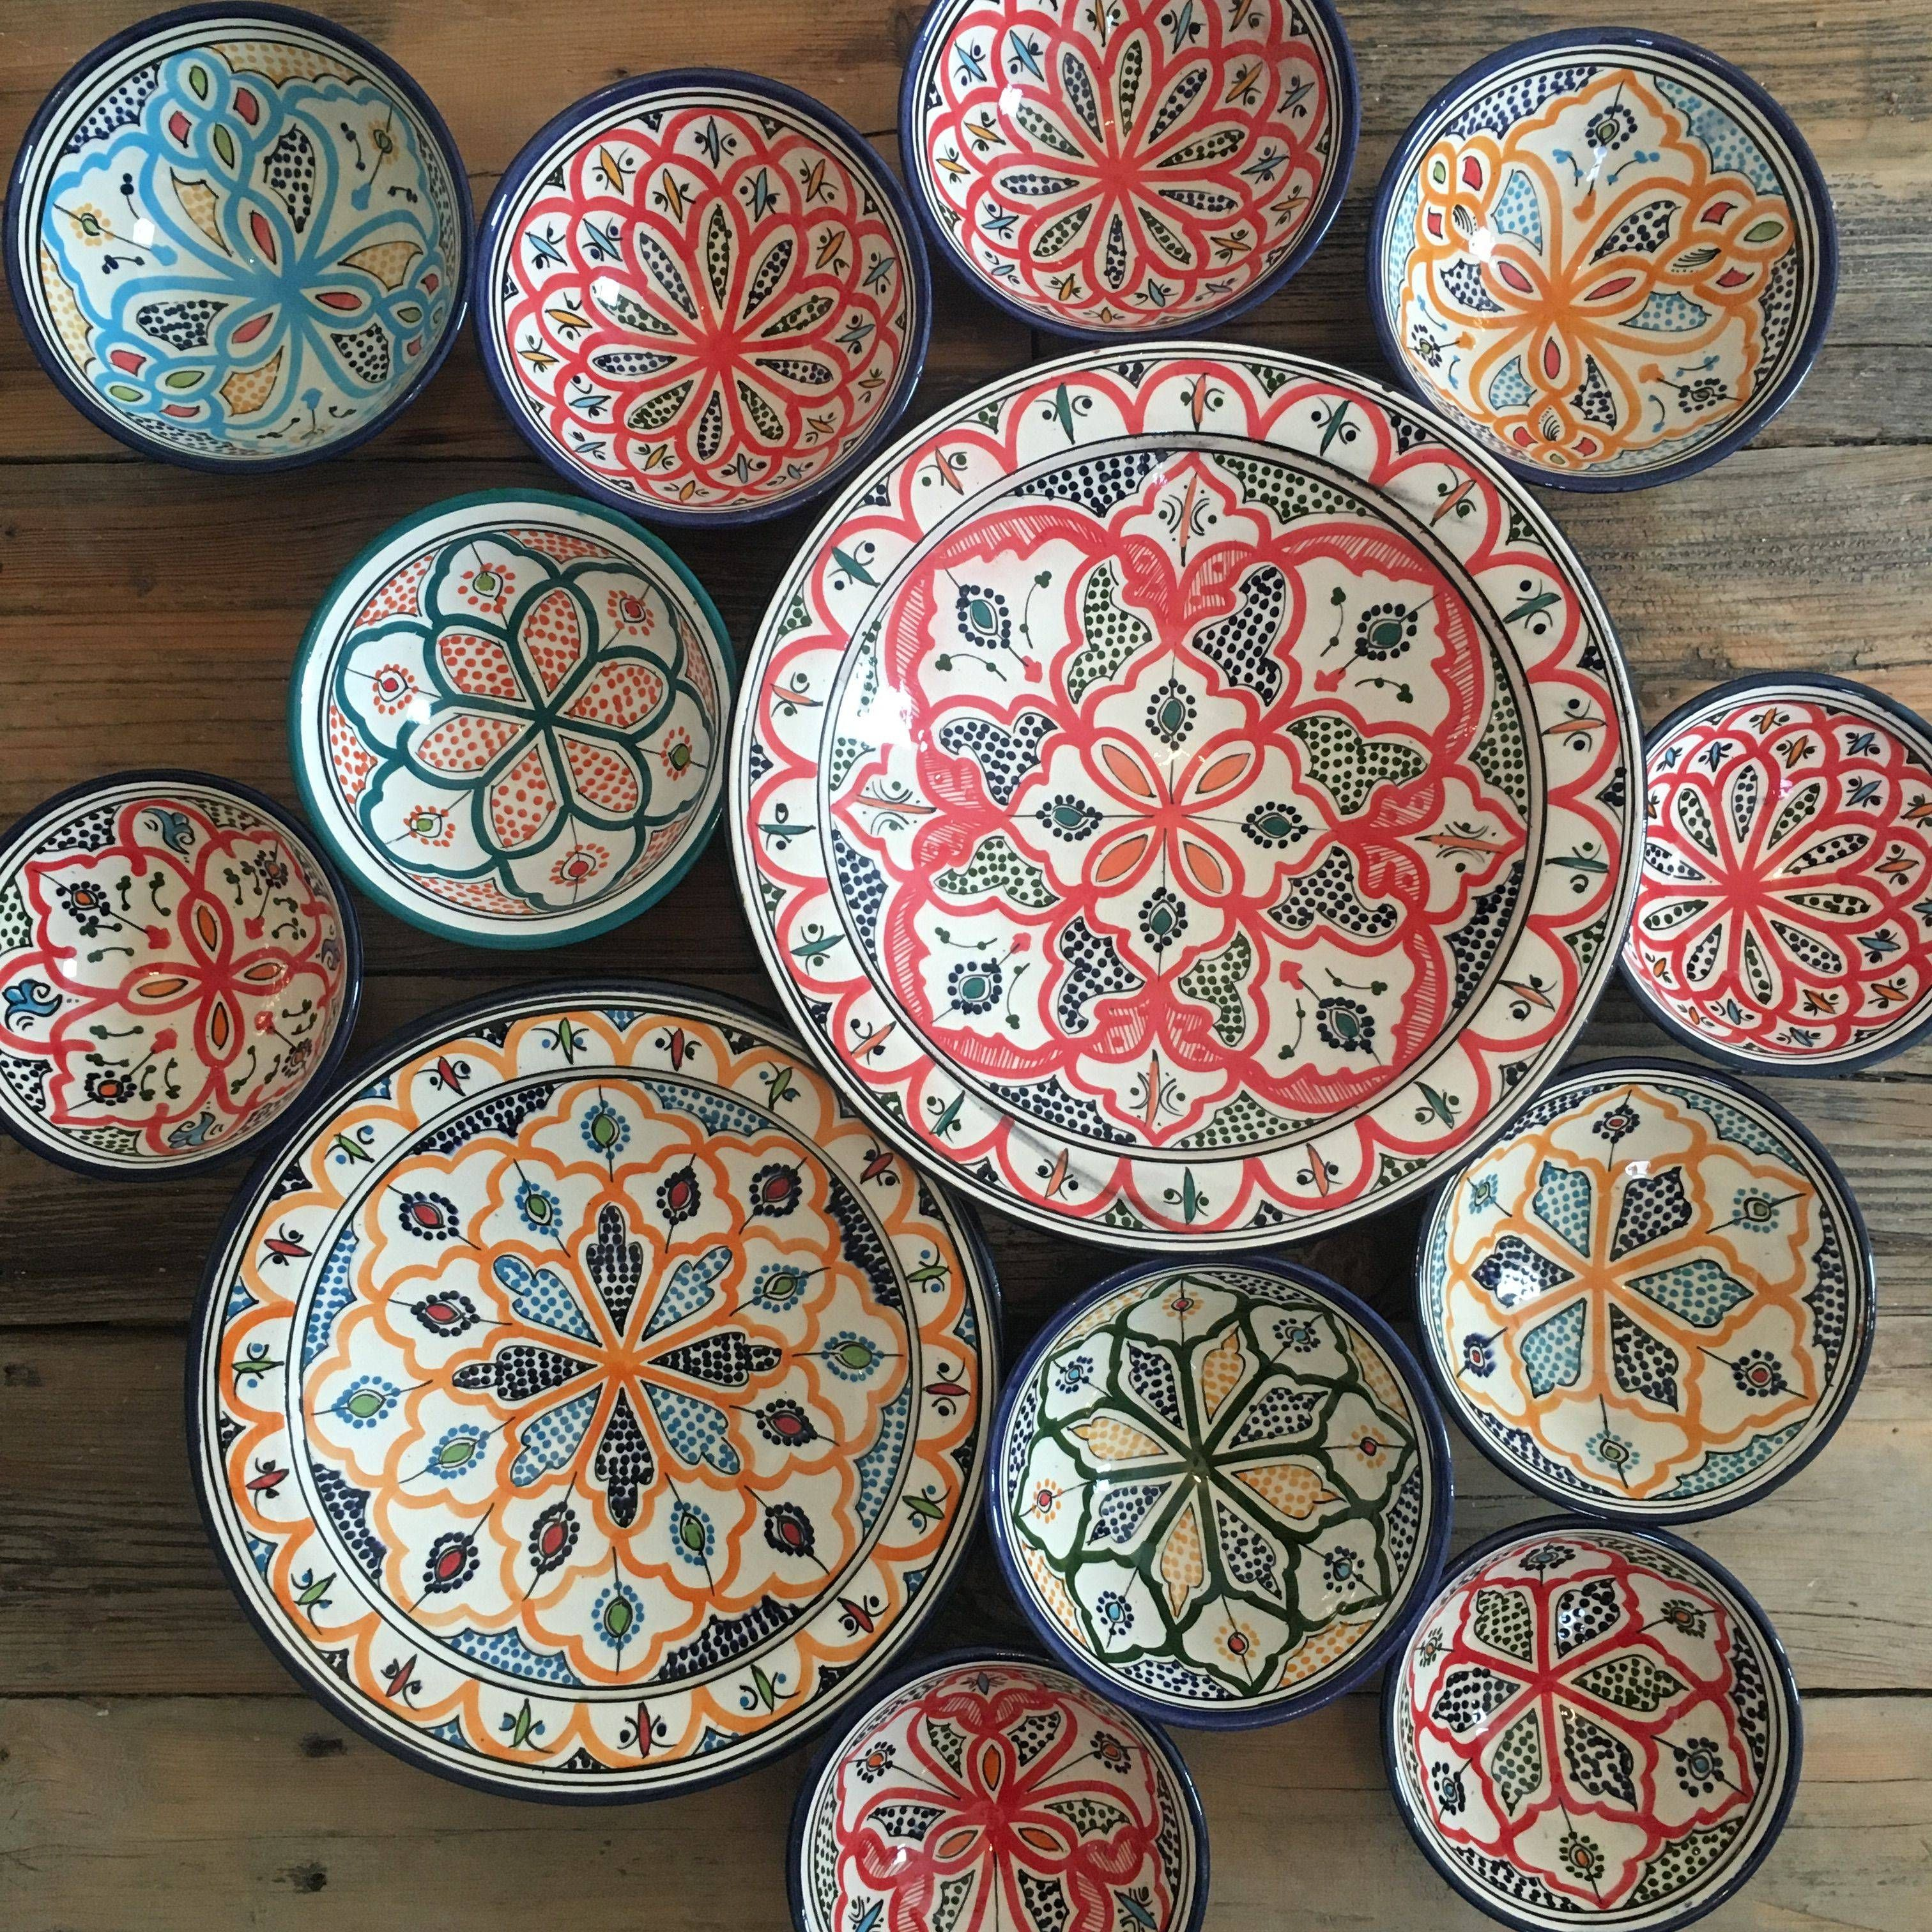 Picturesque Moroccan Decorative Wall Plates In 2020 Moroccan